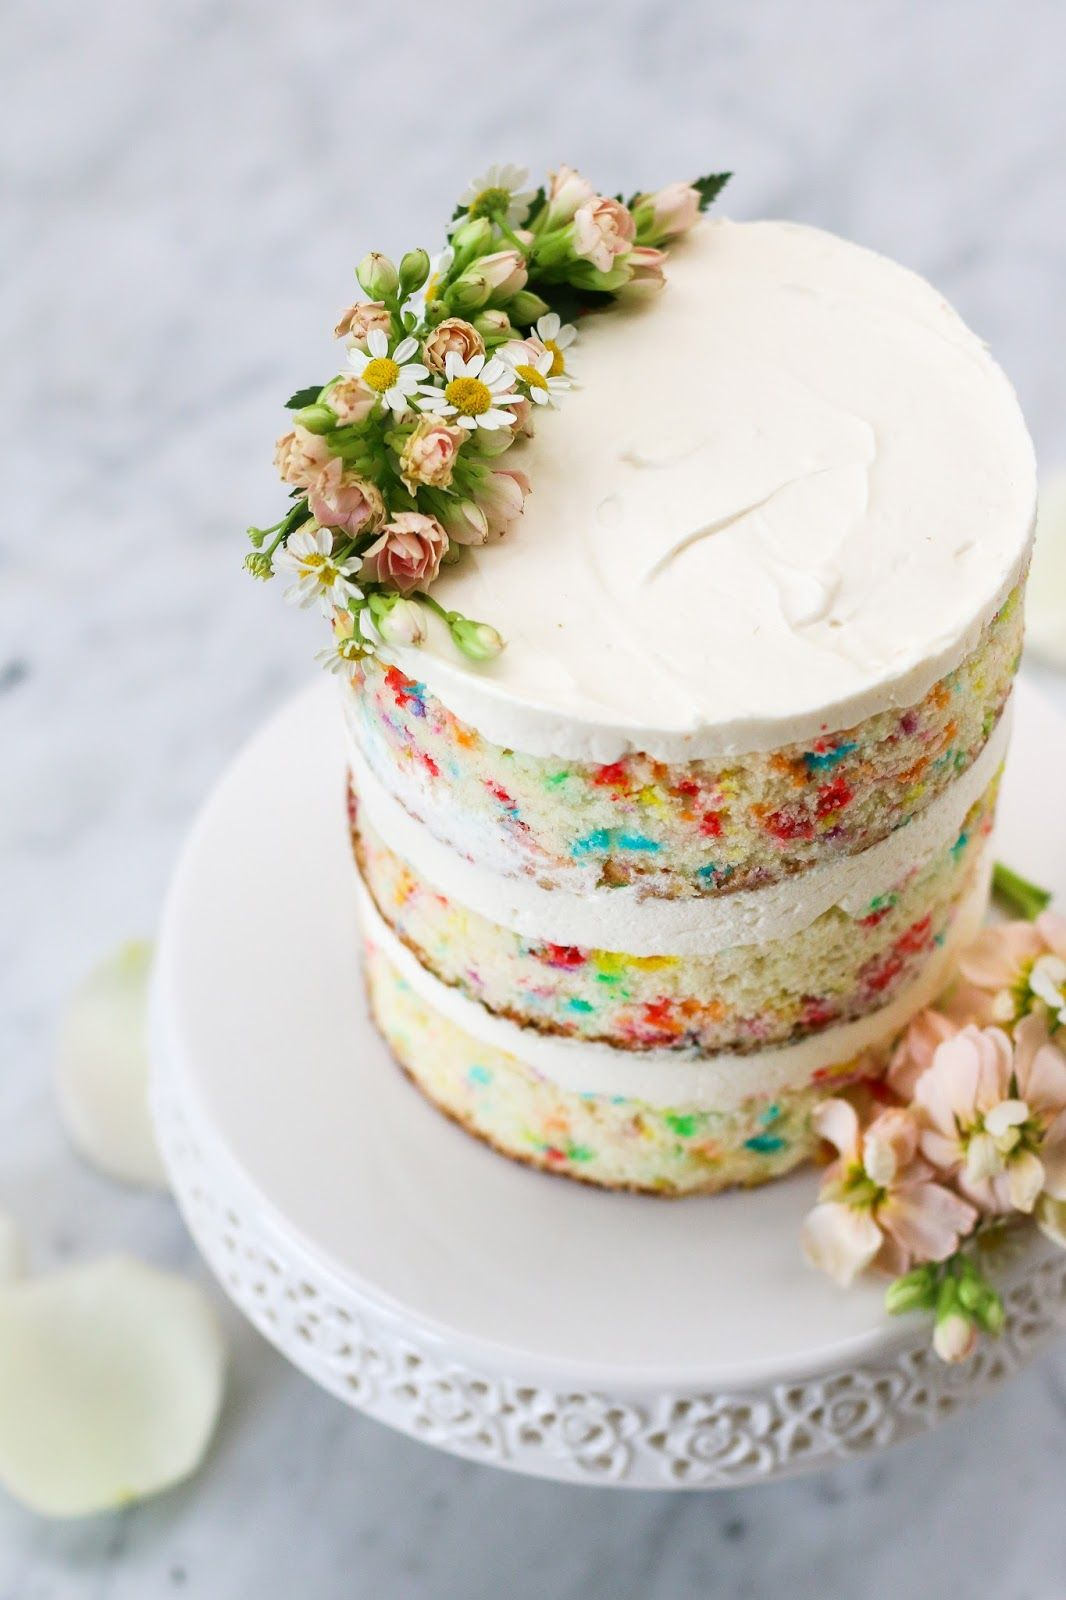 Funfetti cake with whipped cream cheese frosting with